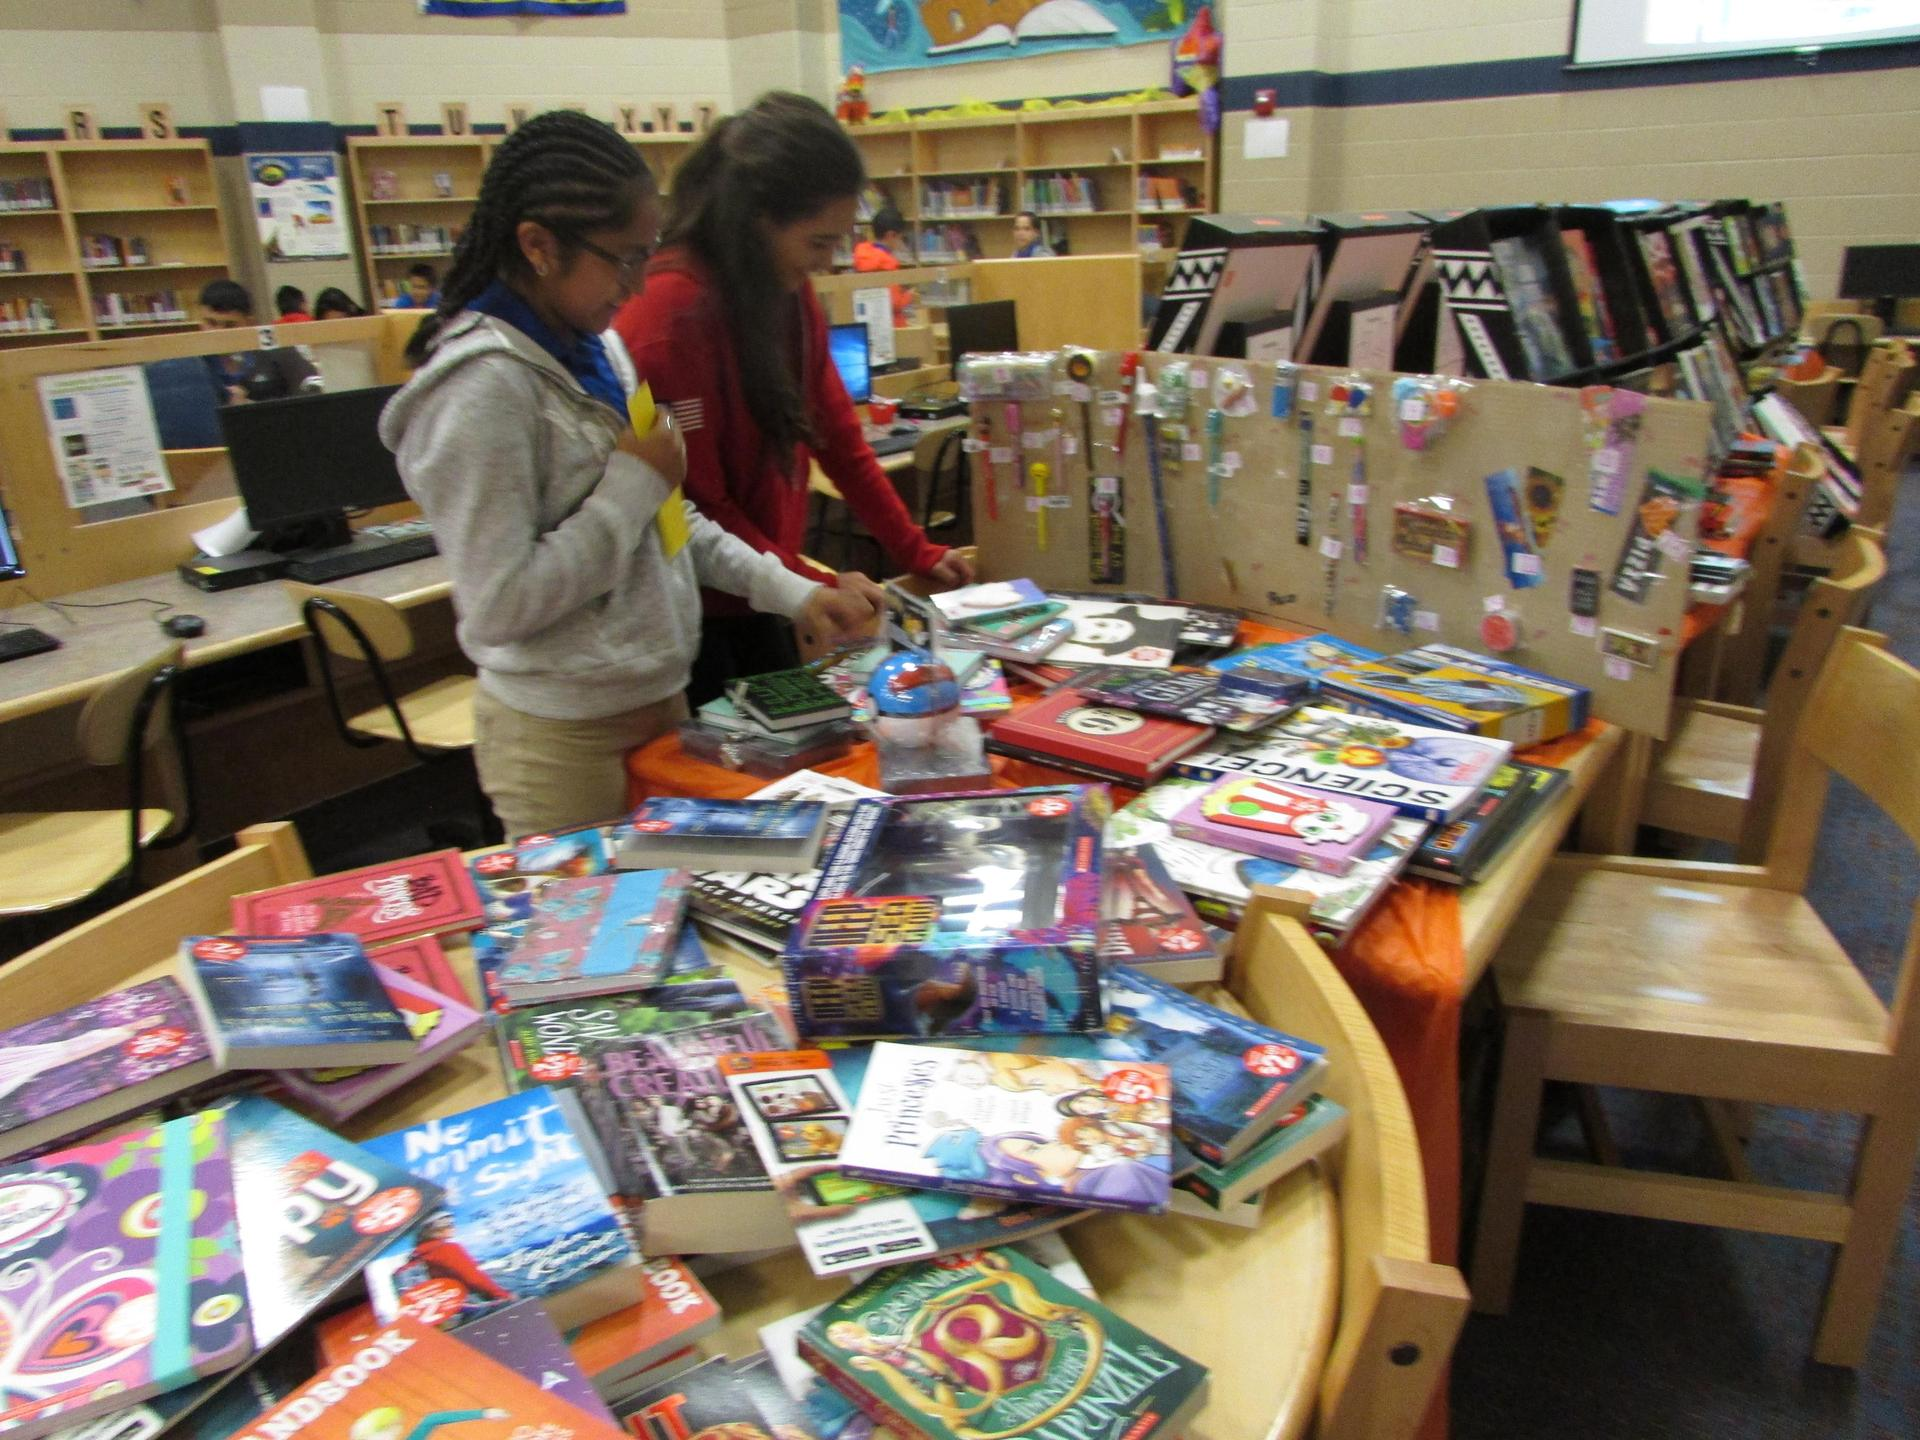 Students at the bookfair in the library.